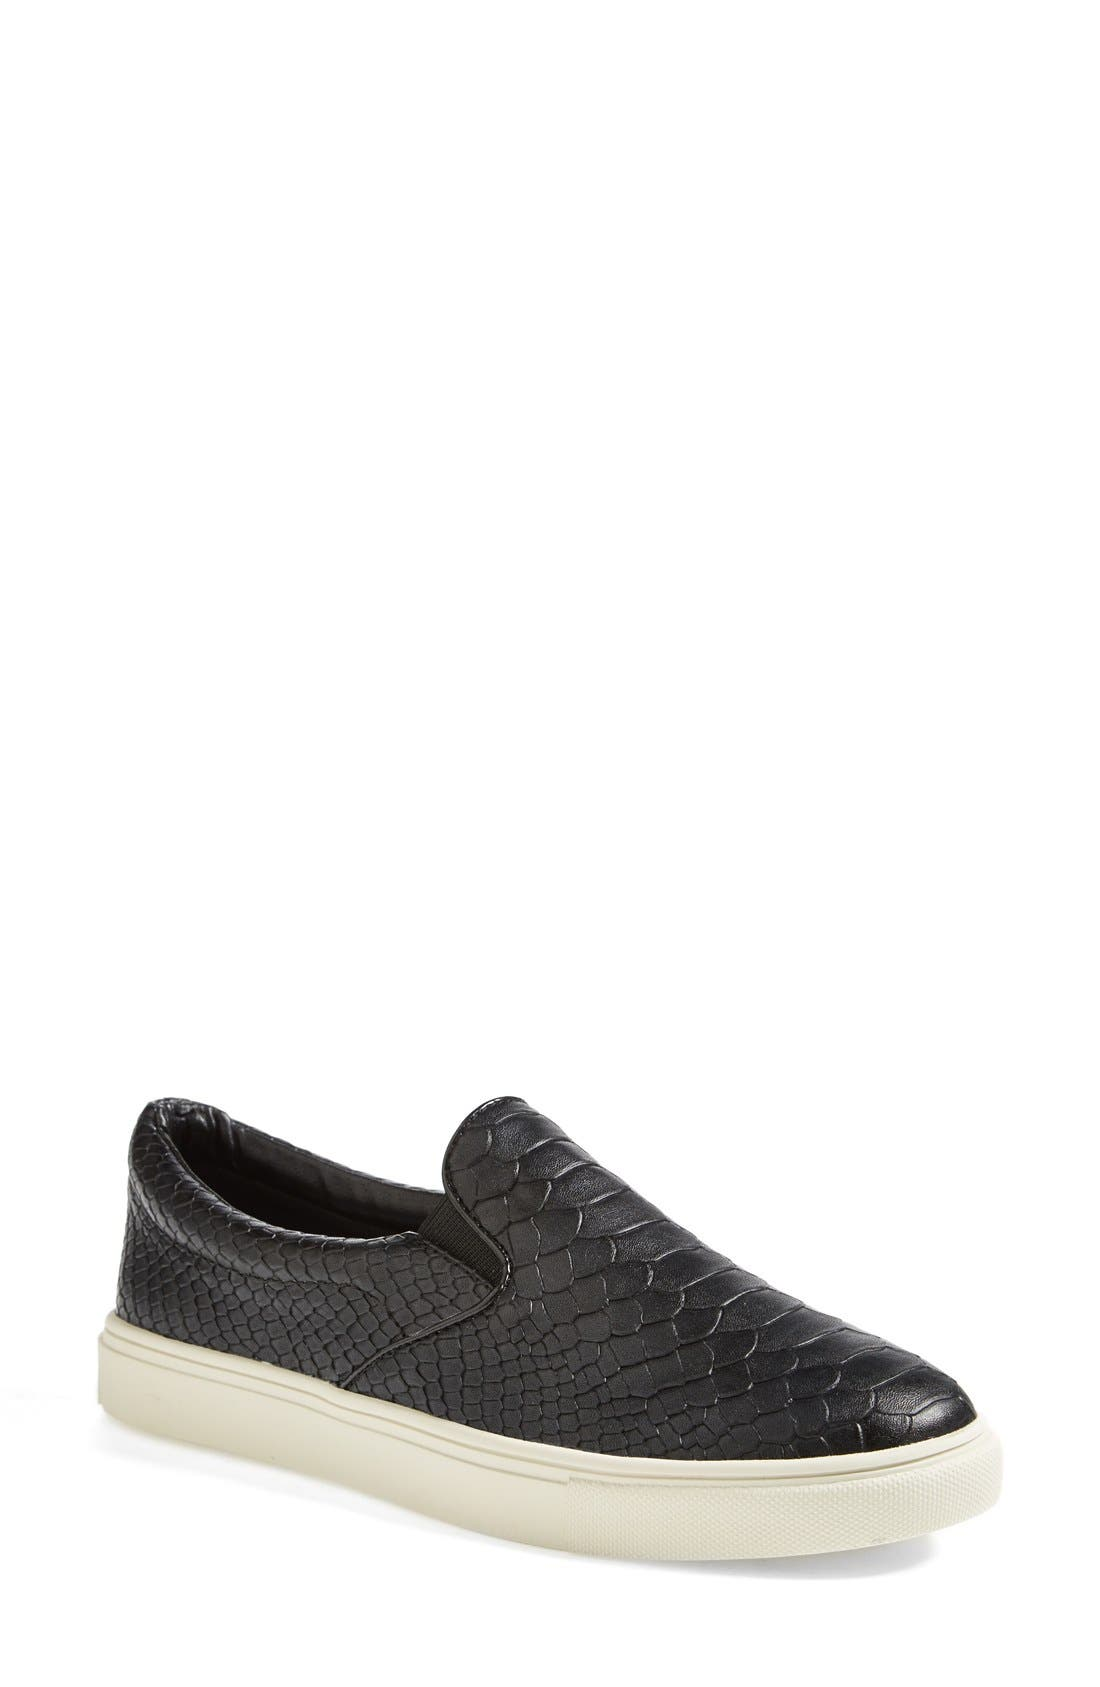 'Ecntrc-c' Snake-Embossed Slip-On Sneaker,                         Main,                         color,